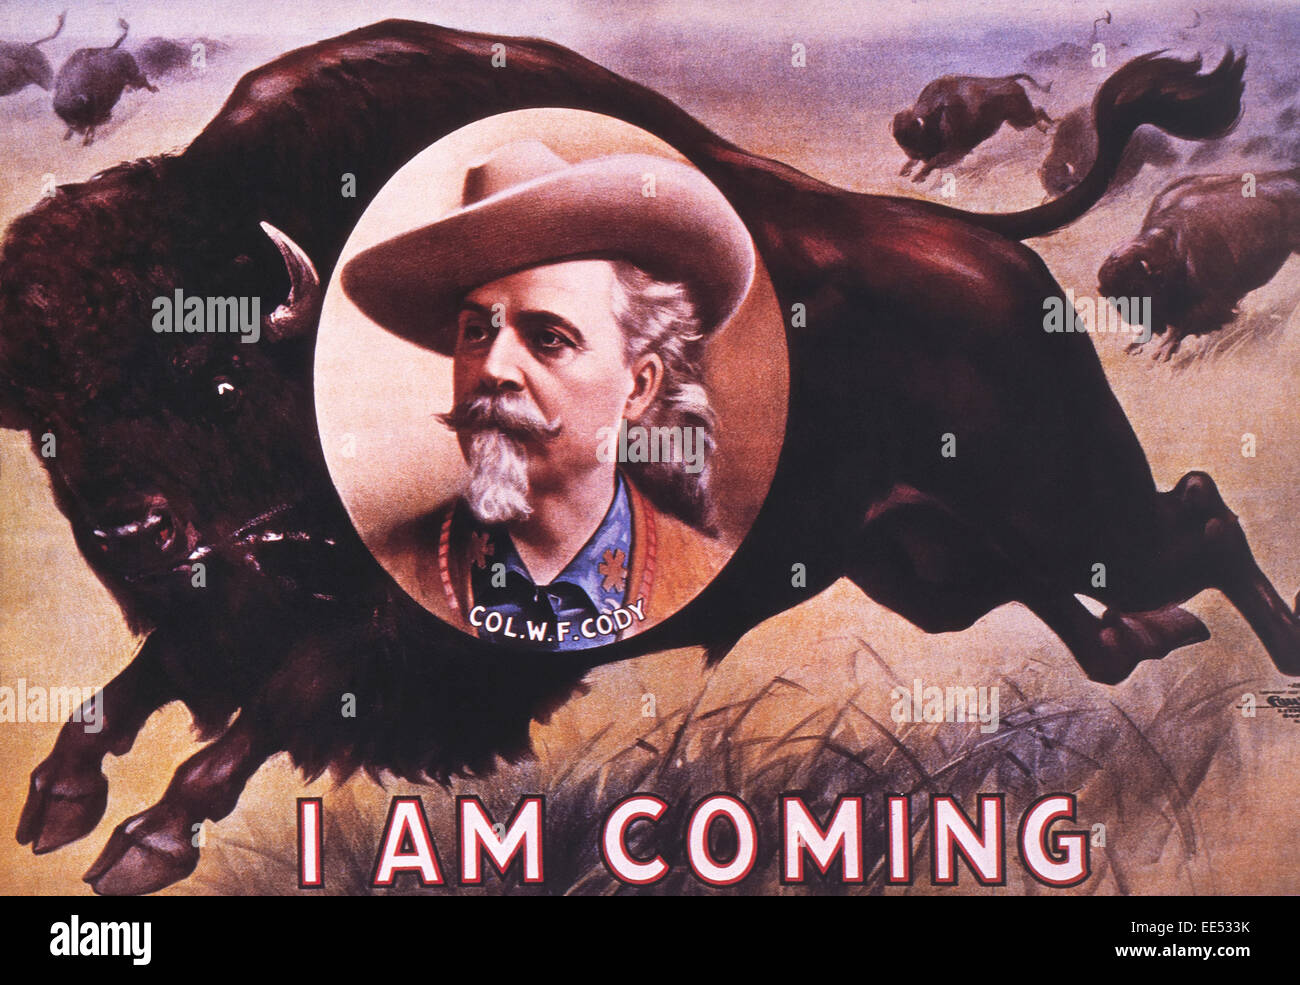 Poster for Buffalo Bill's Wild West Show, 'I Am Coming', circa 1883 - Stock Image